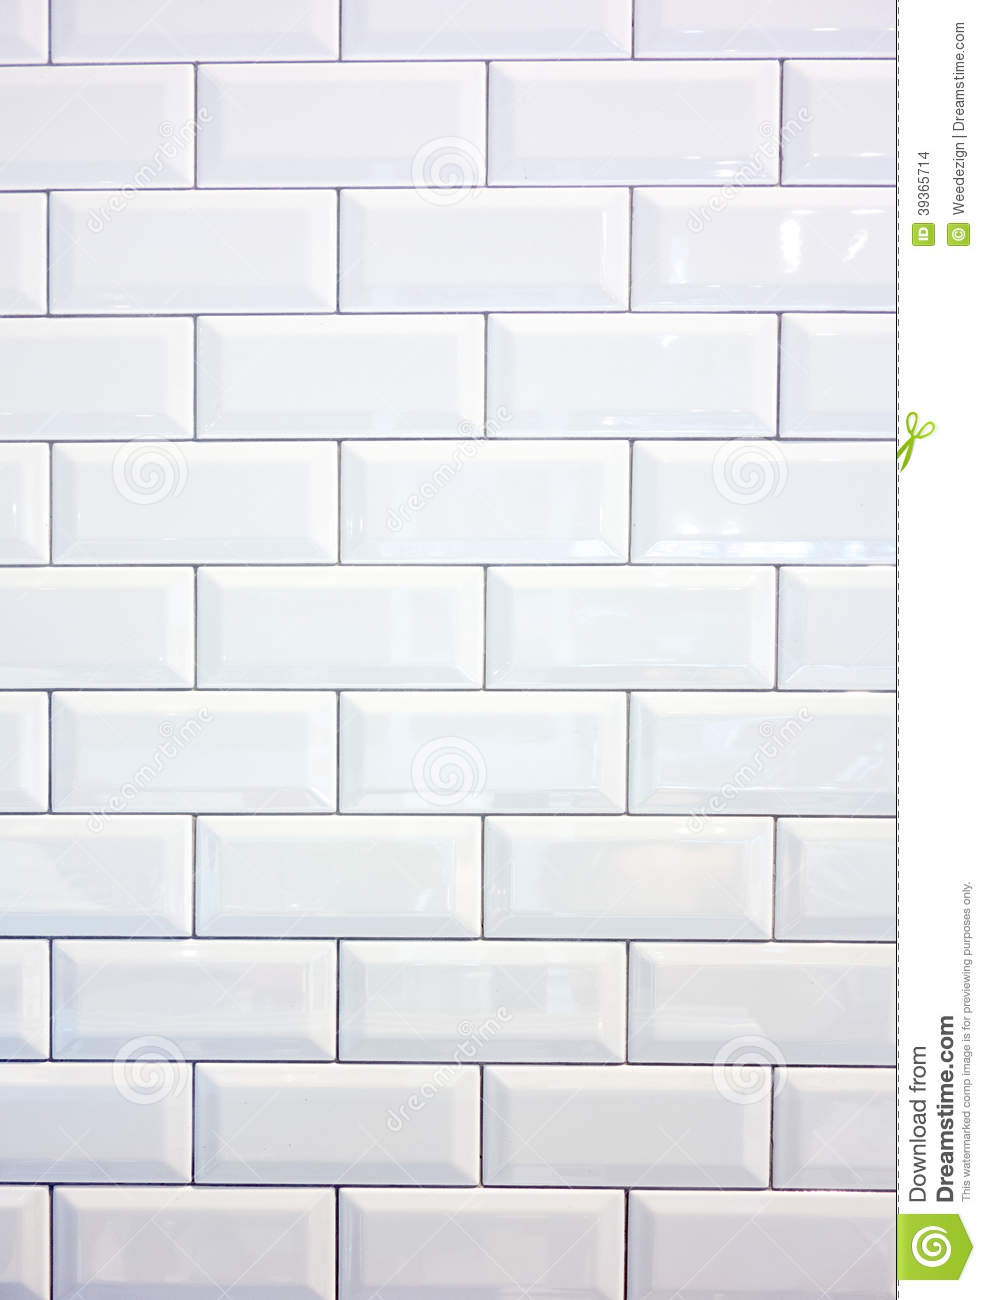 White ceramic tile wall stock photo image of clean tile - How to install ceramic tile on wall ...